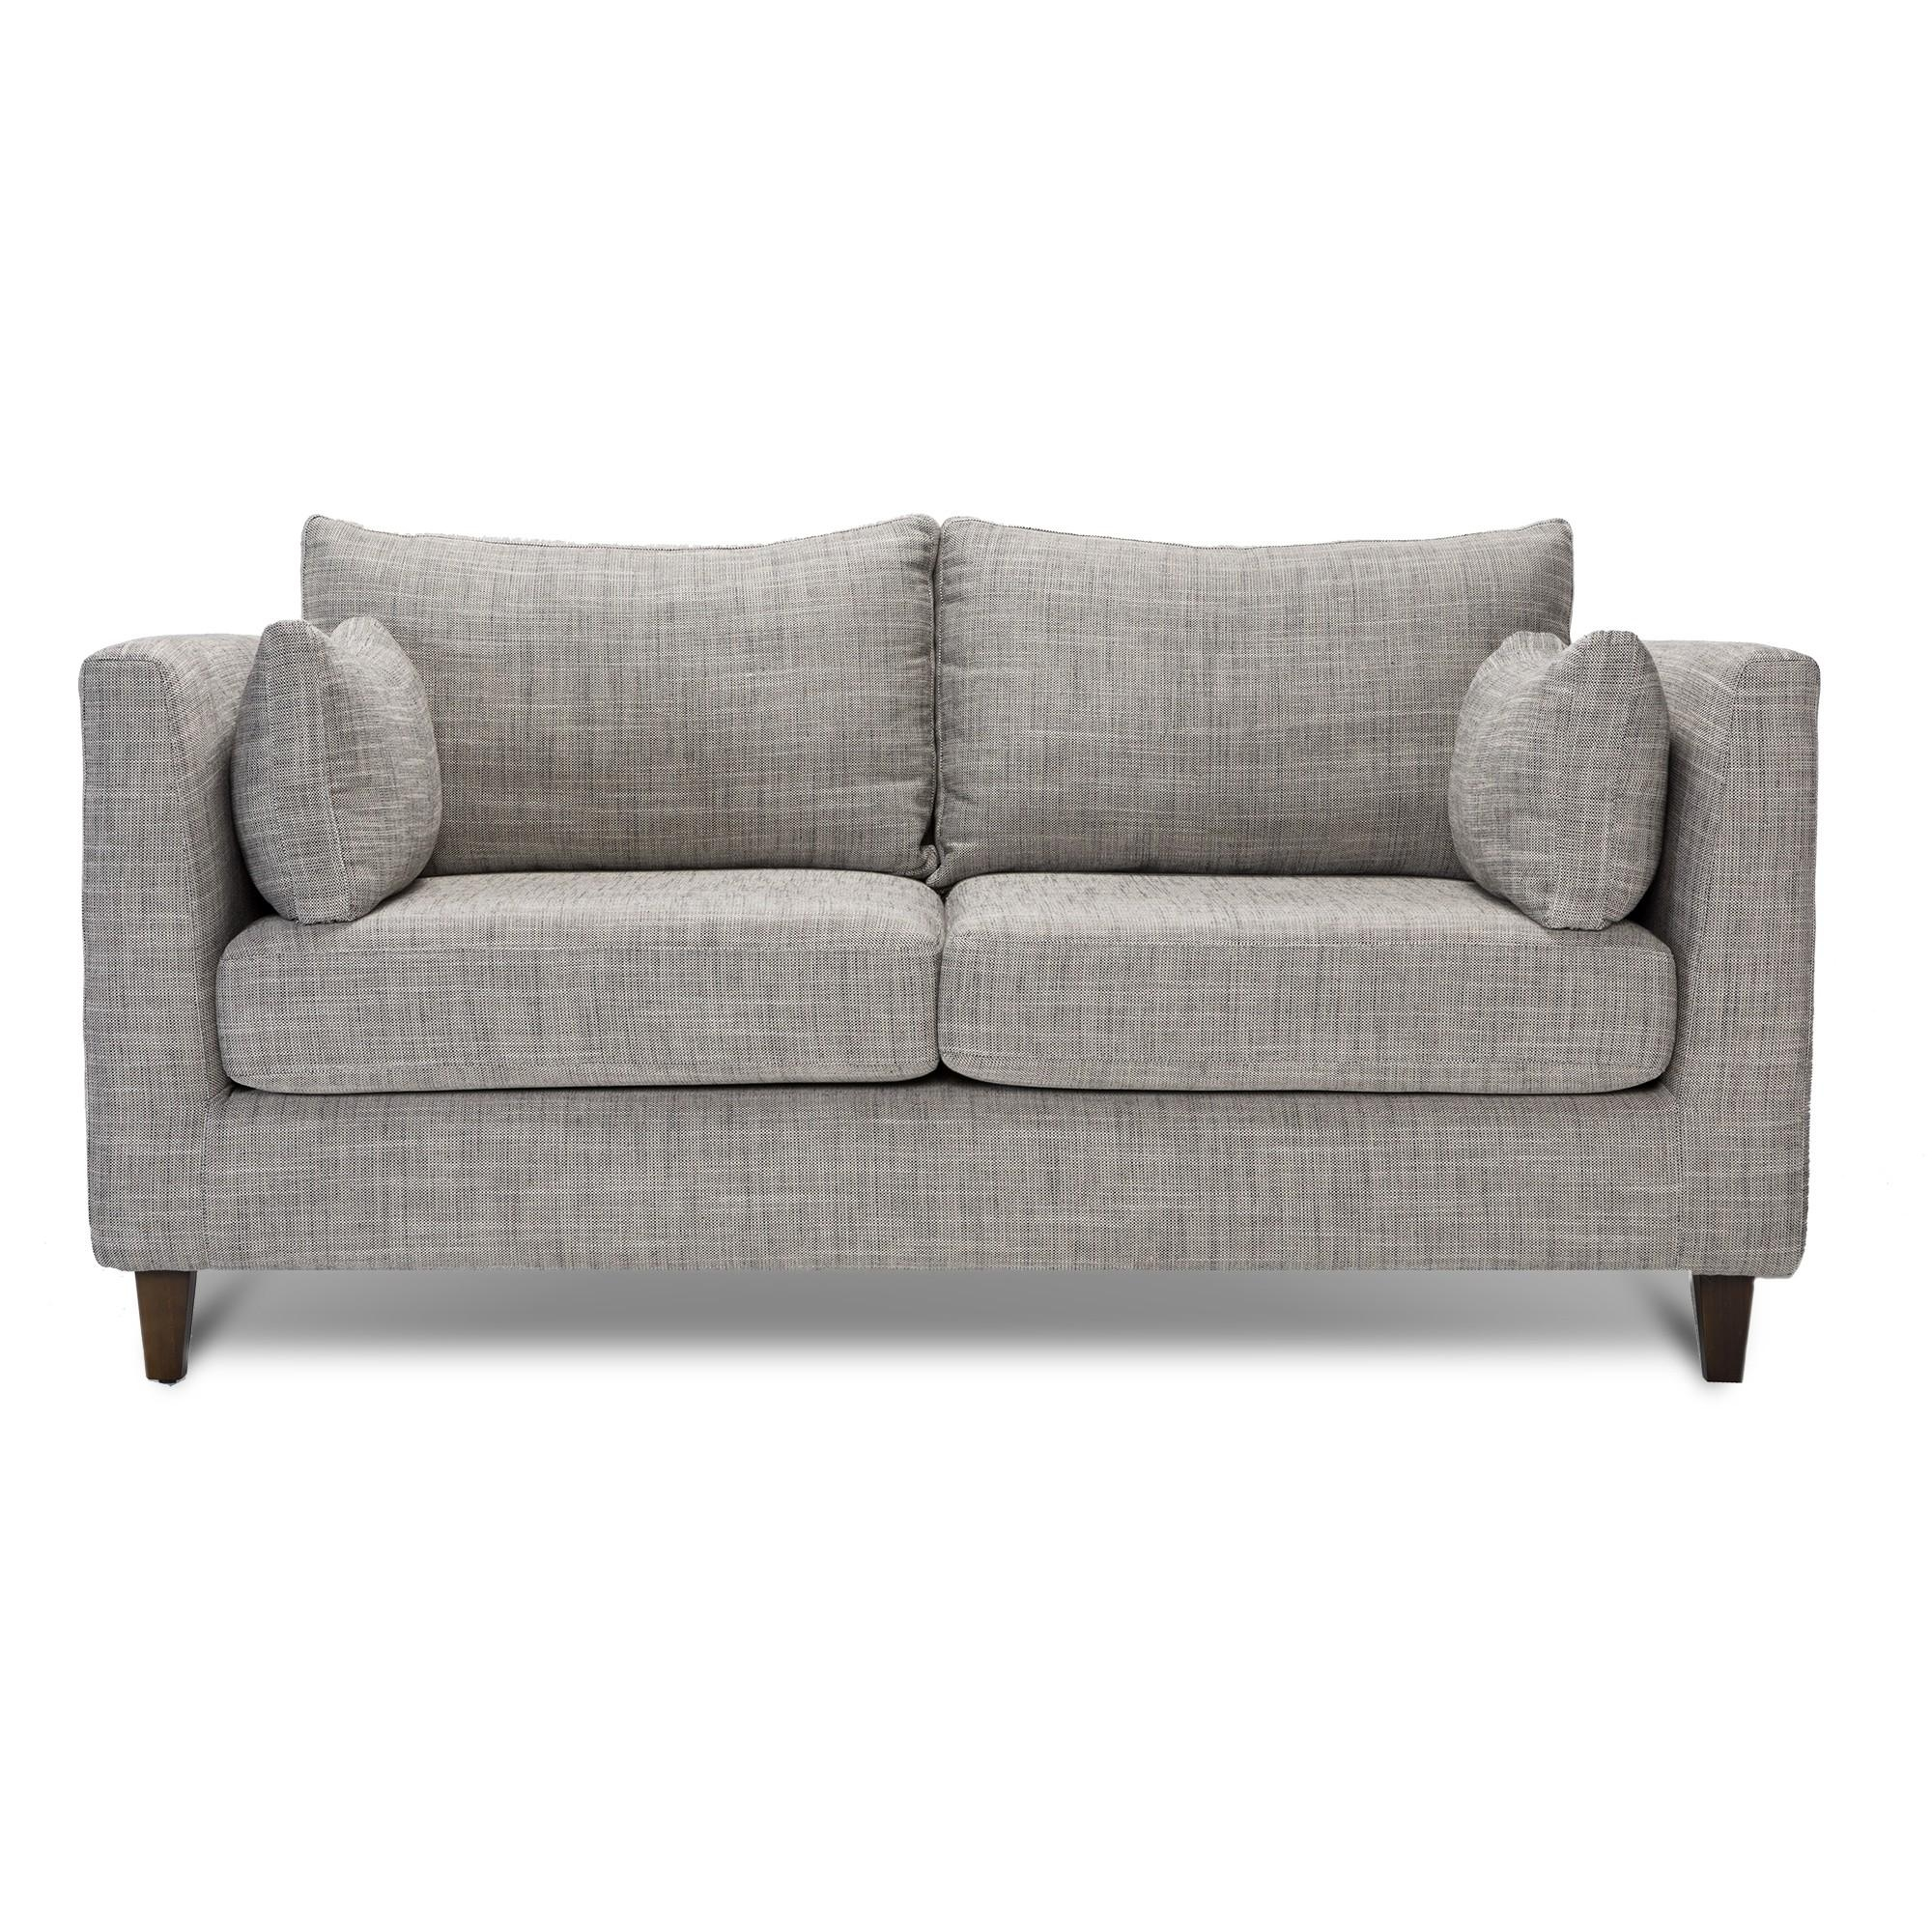 Harrison Sofa – Furniture Throughout Harrison Sofas (View 3 of 20)